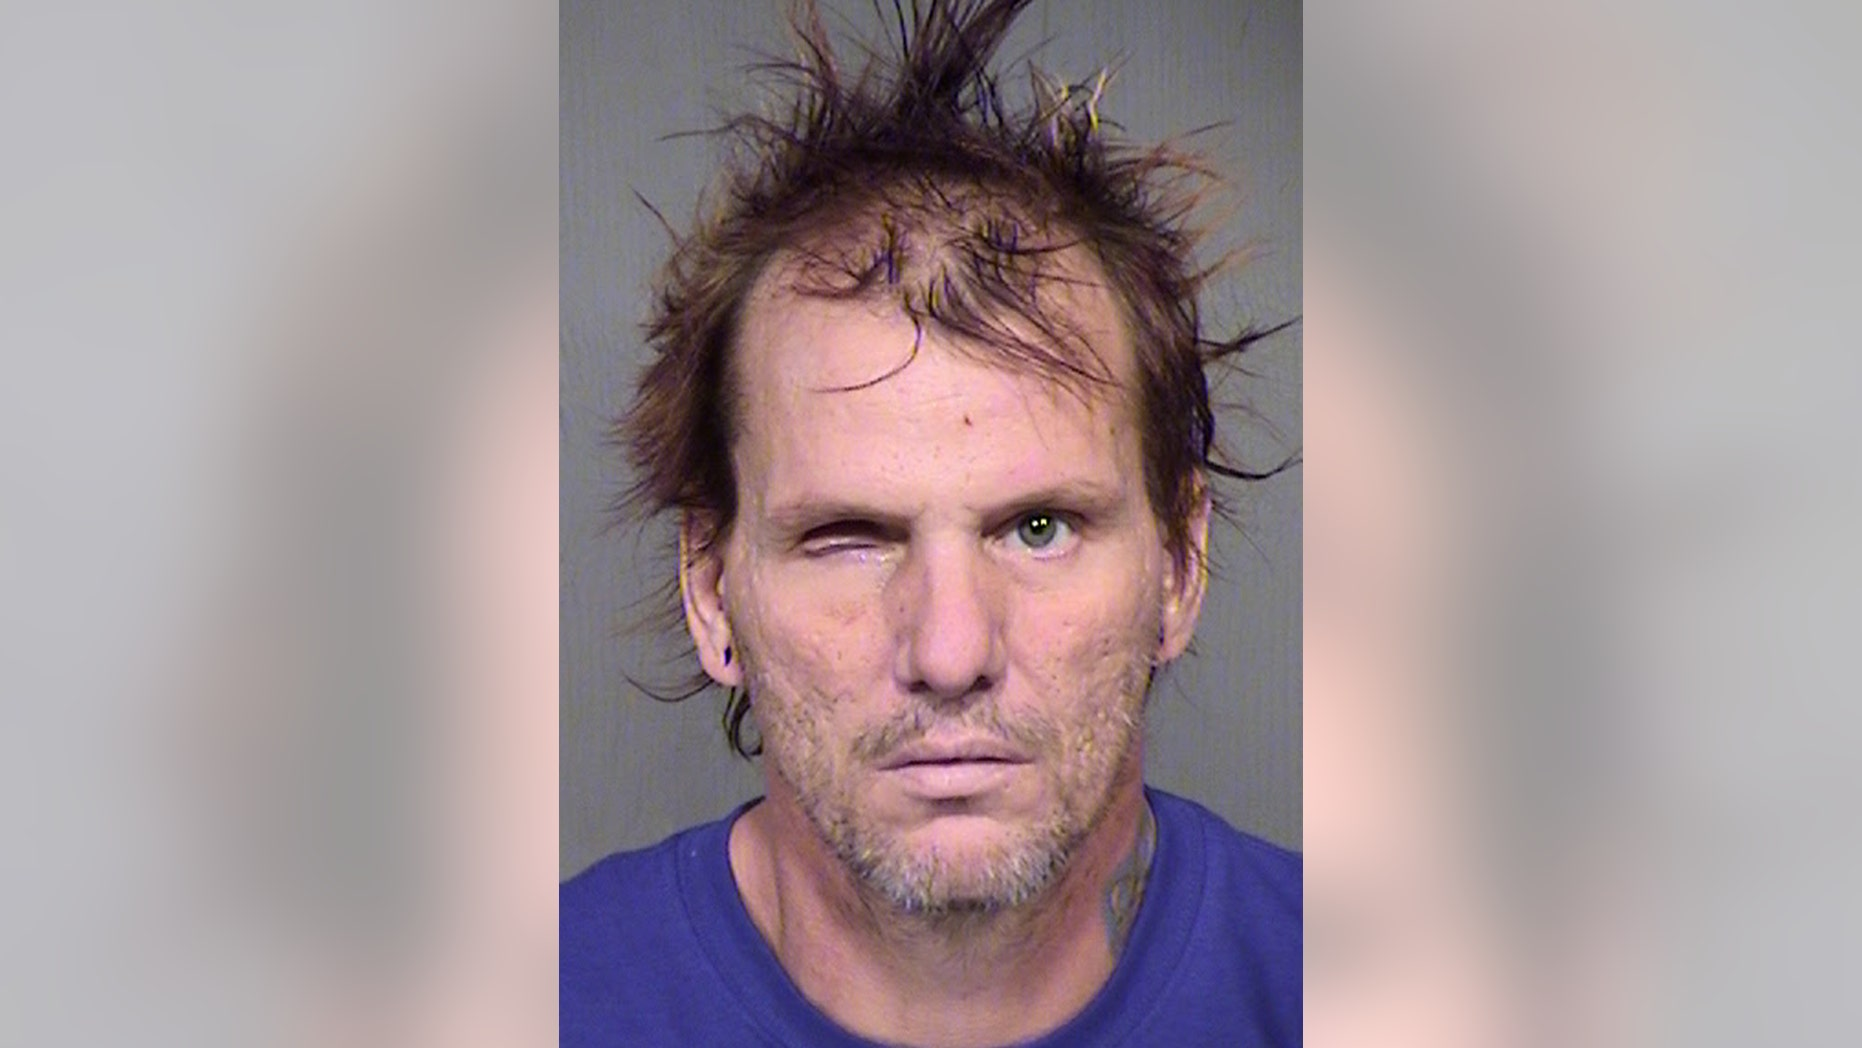 This booking photo provided by the Maricopa County Sheriff's Office shows 43-year-old Kenneth Dale Wakefield. Investigators say Wakefield killed and decapitated his 49-year-old wife, Trina Heisch, and their two dogs and then inflicted injuries on himself, including a severed left forearm and a missing eye. He was booked into Maricopa County jail Saturday afternoon, Aug. 1, 2015, on one count of first-degree murder and two counts of animal cruelty. (Maricopa County Sheriff's Office via AP)